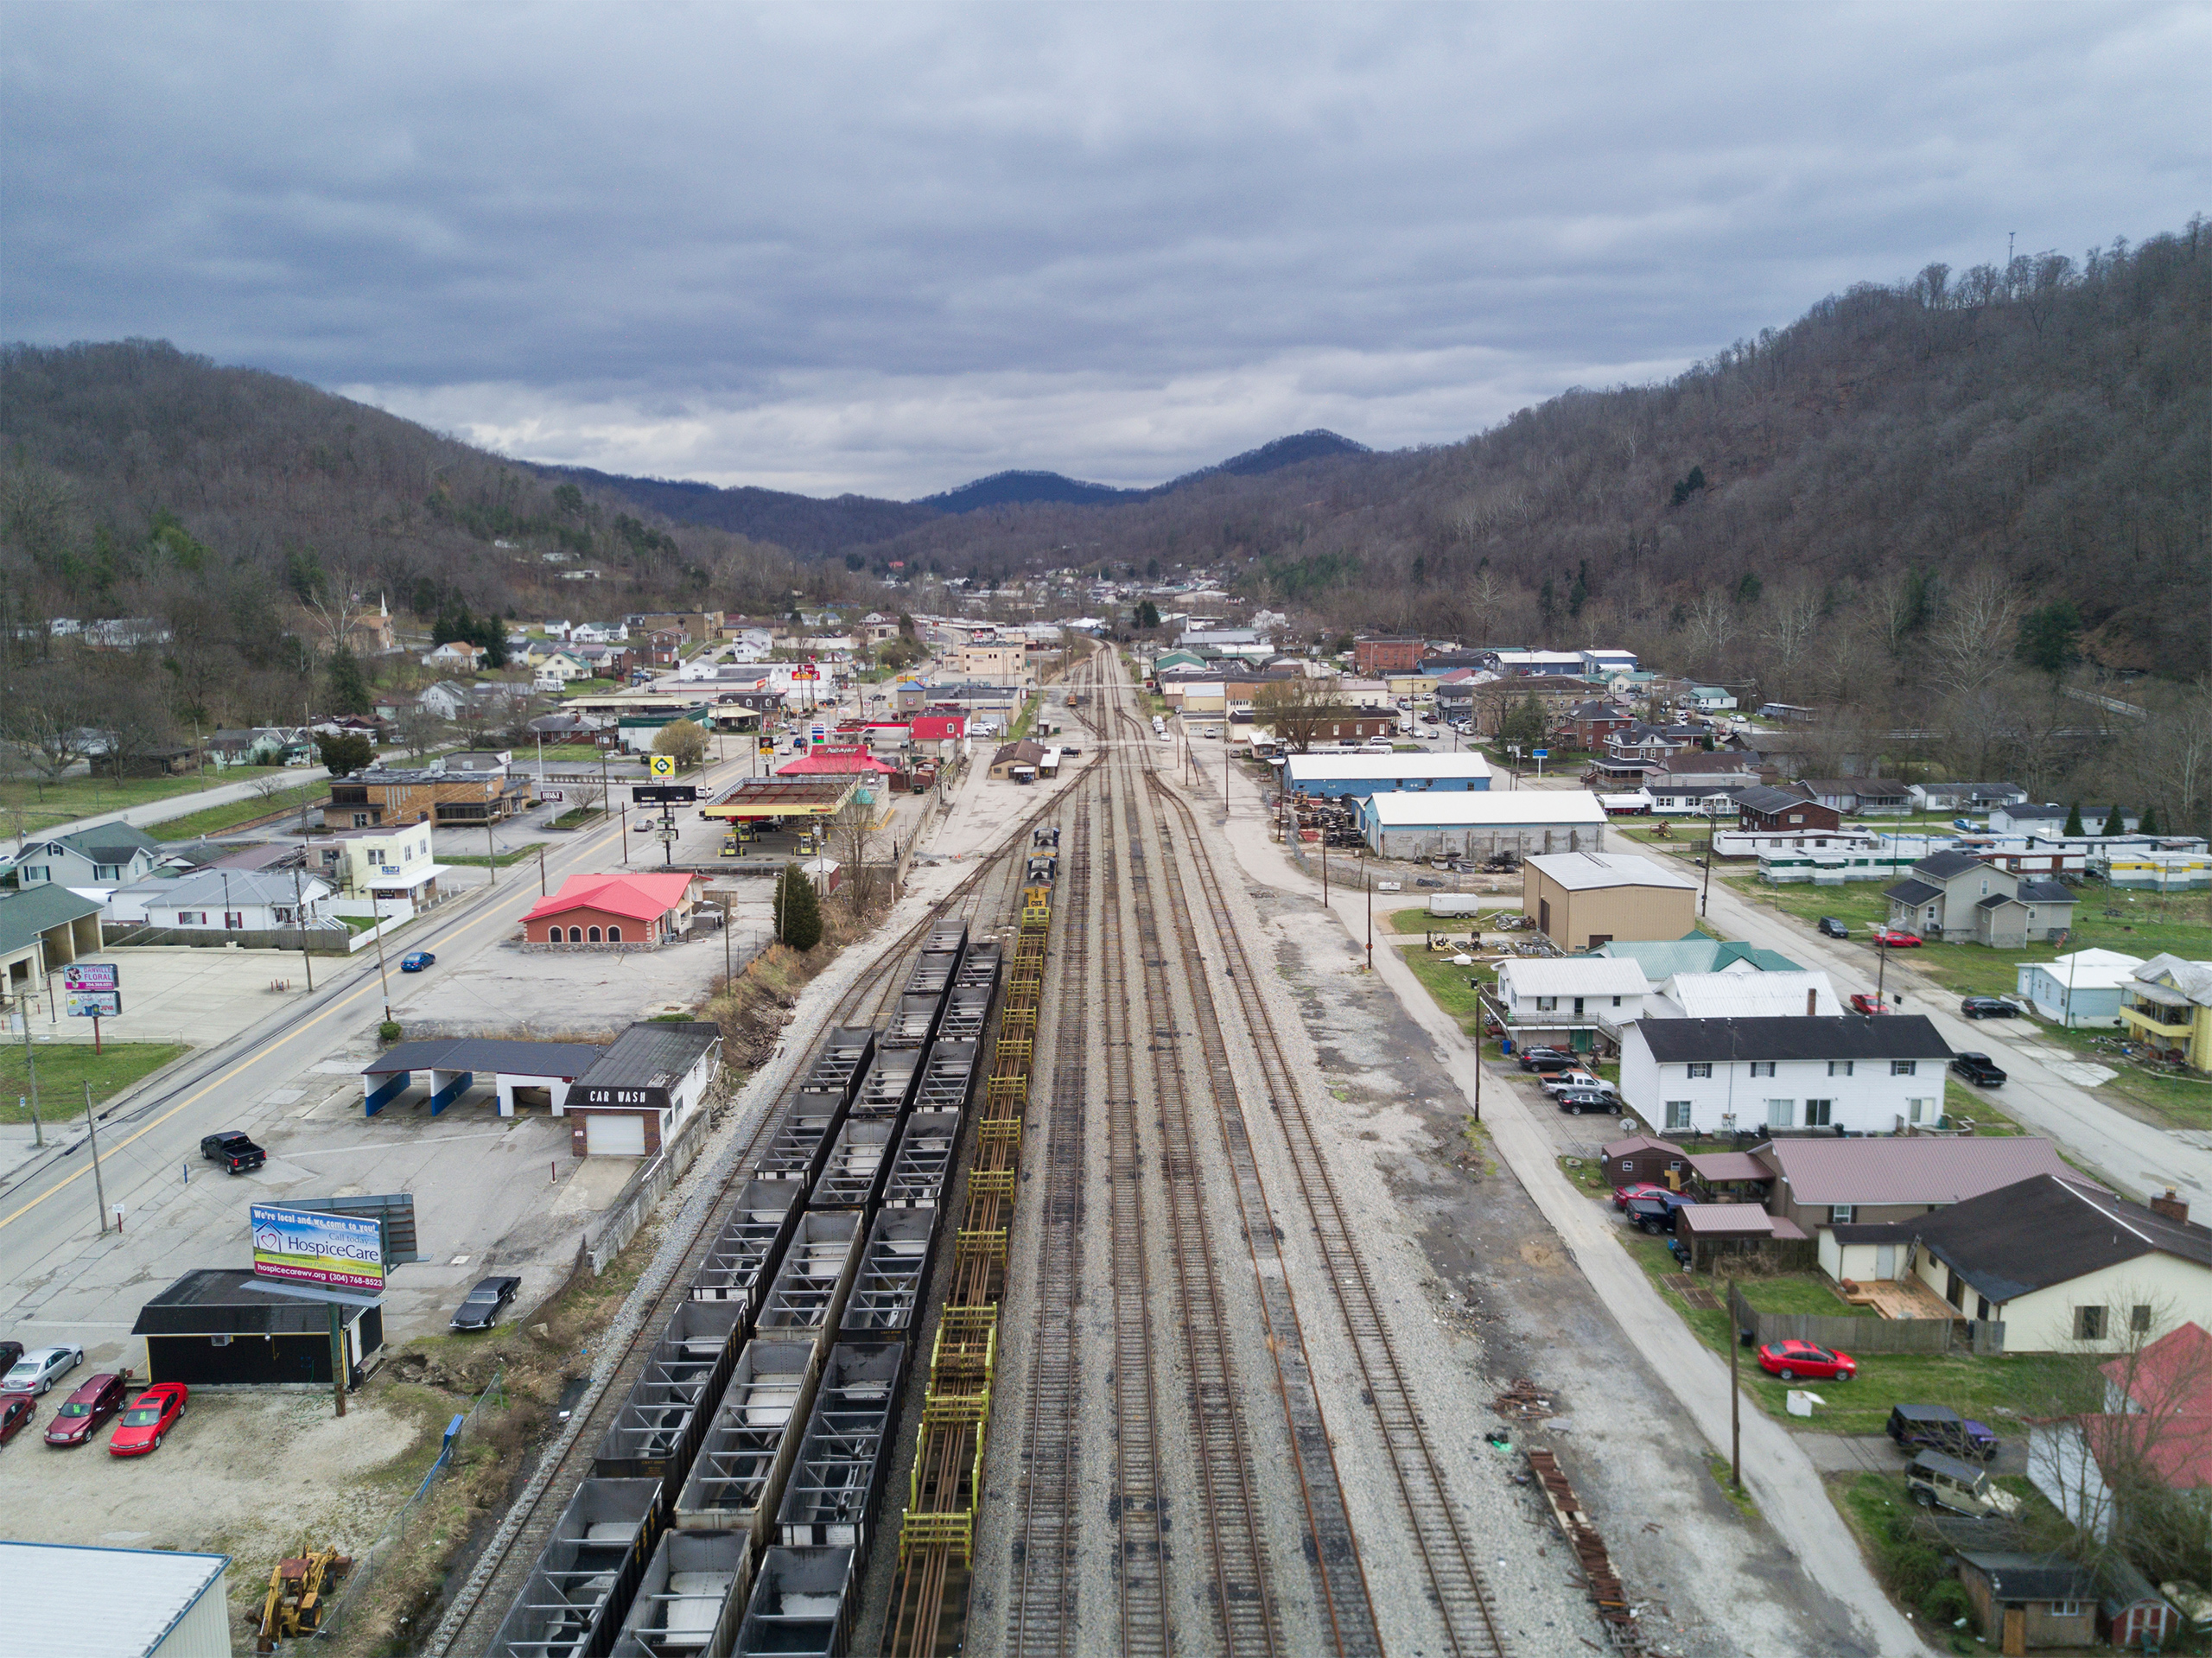 The town of Danville, W.Va., appears on Mar. 19, 2017.